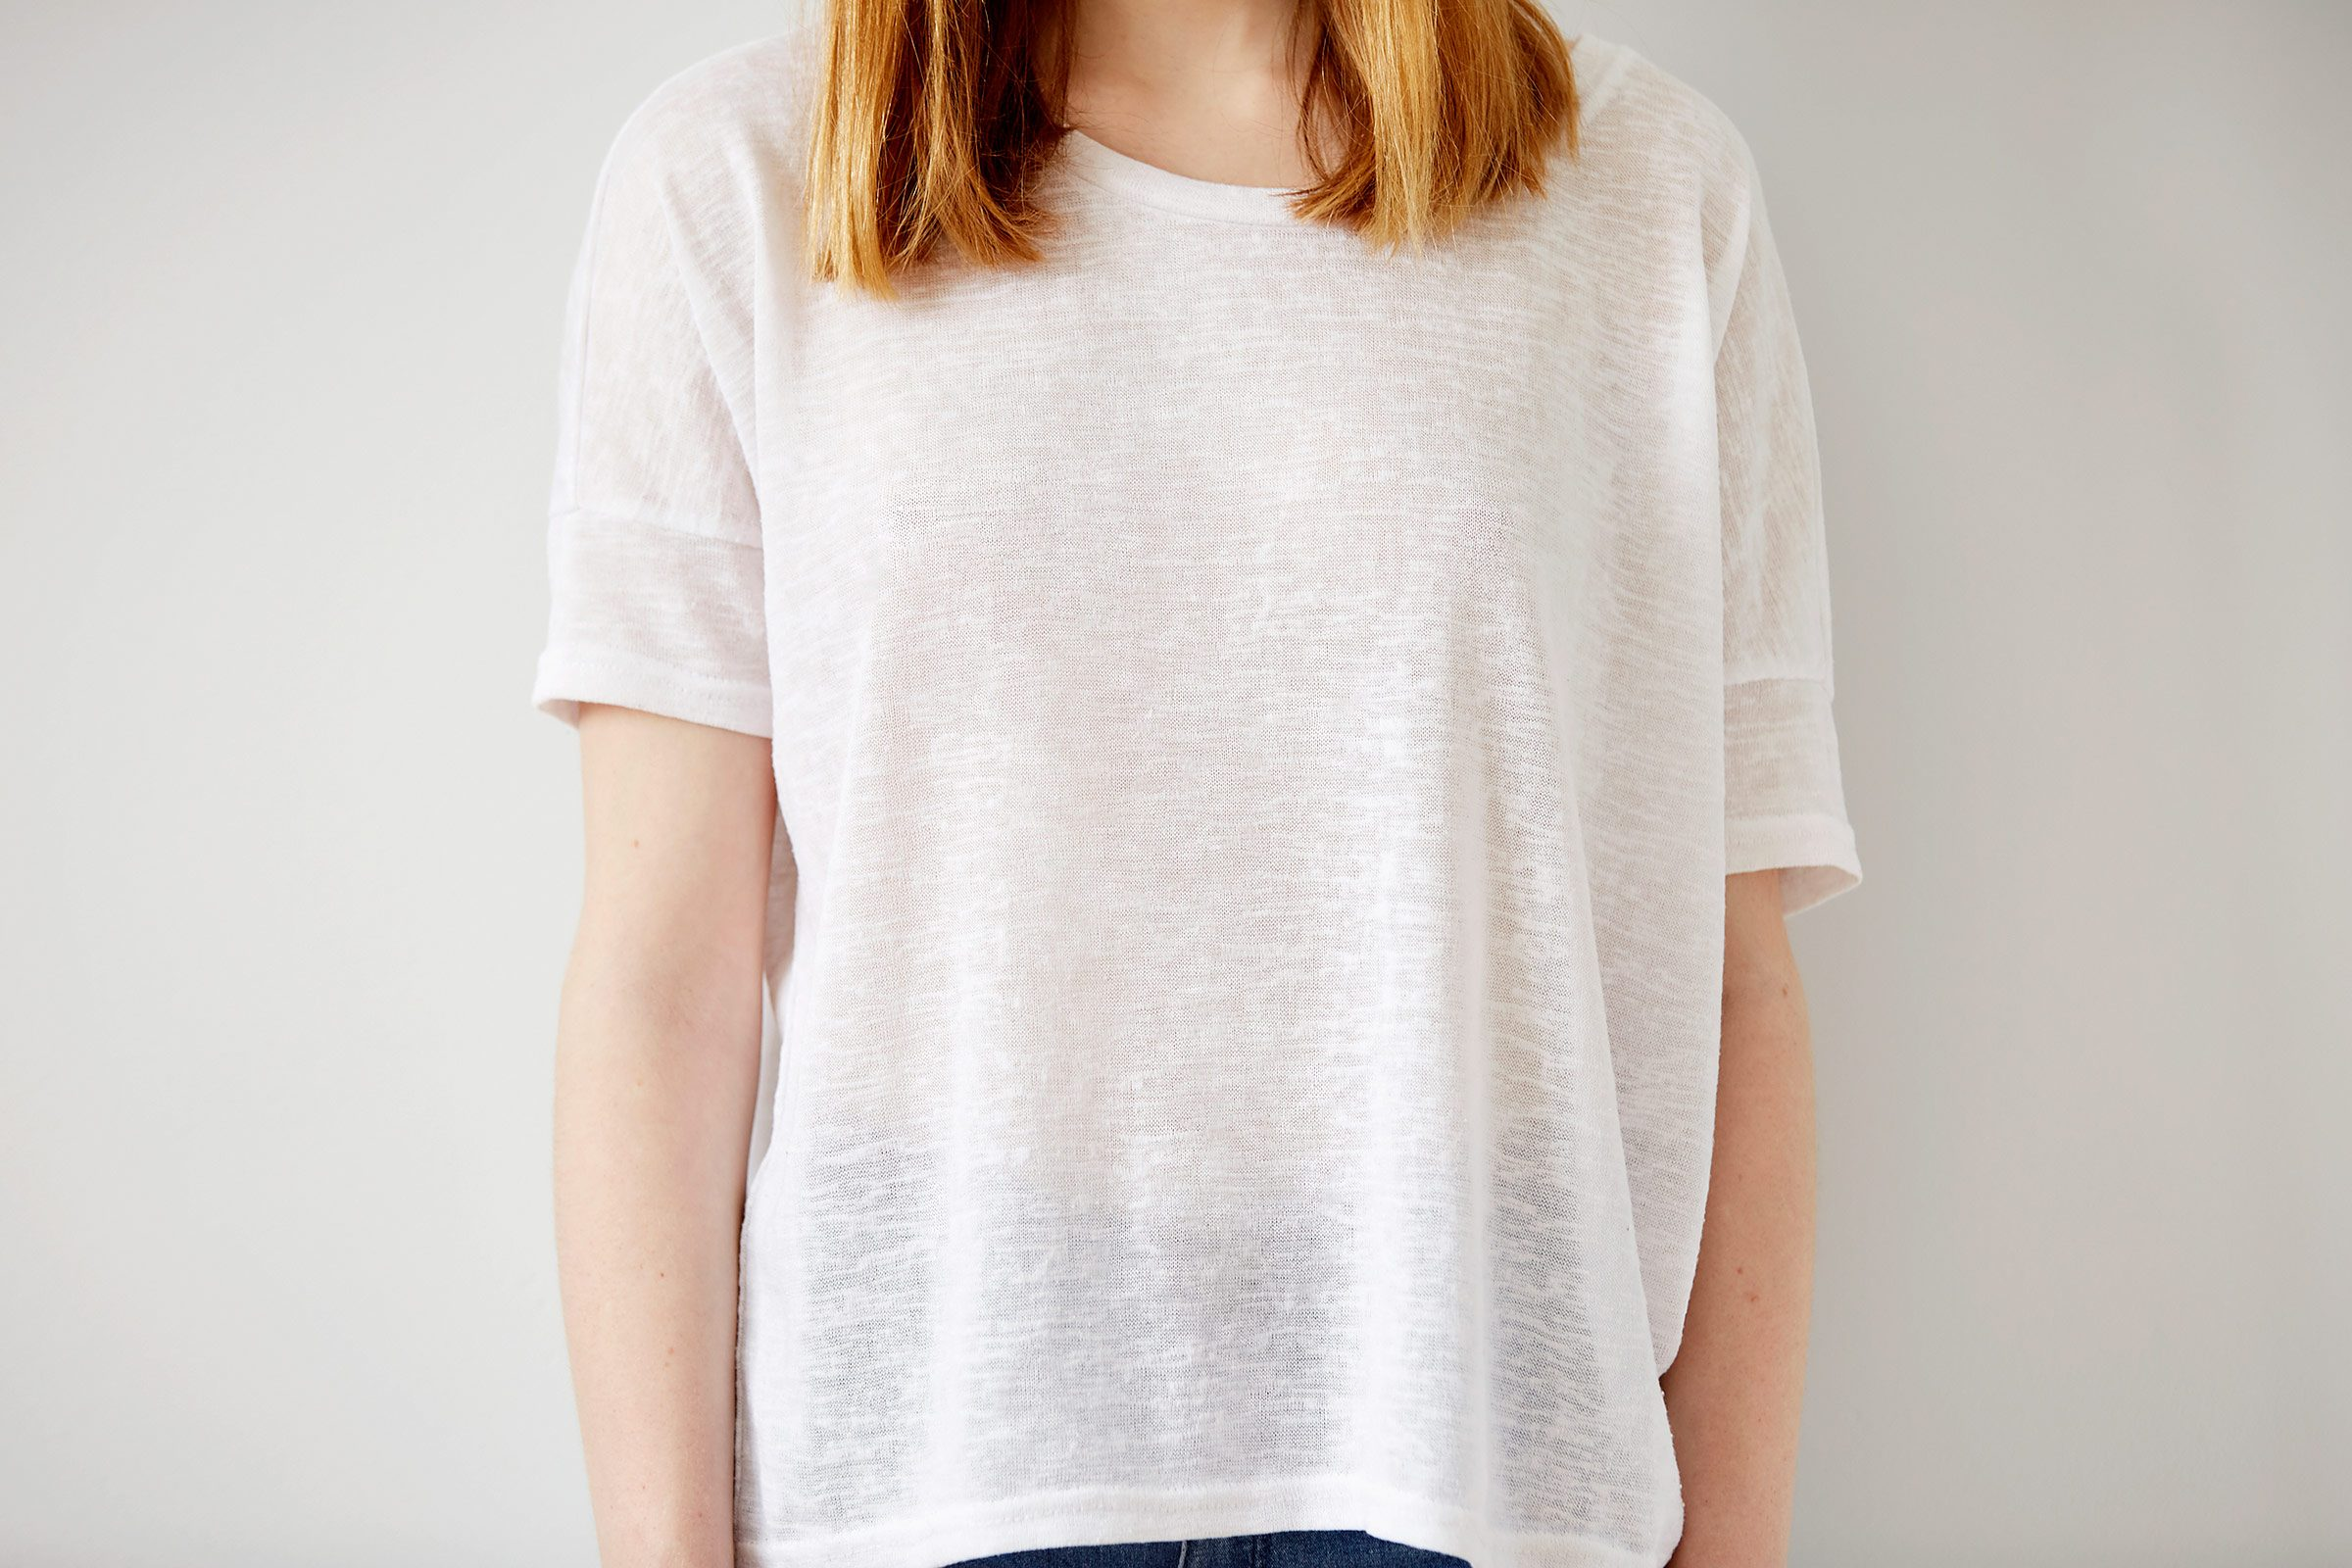 12 outfit mistakes that make you look messy reader 39 s digest for How to whiten dingy white t shirts